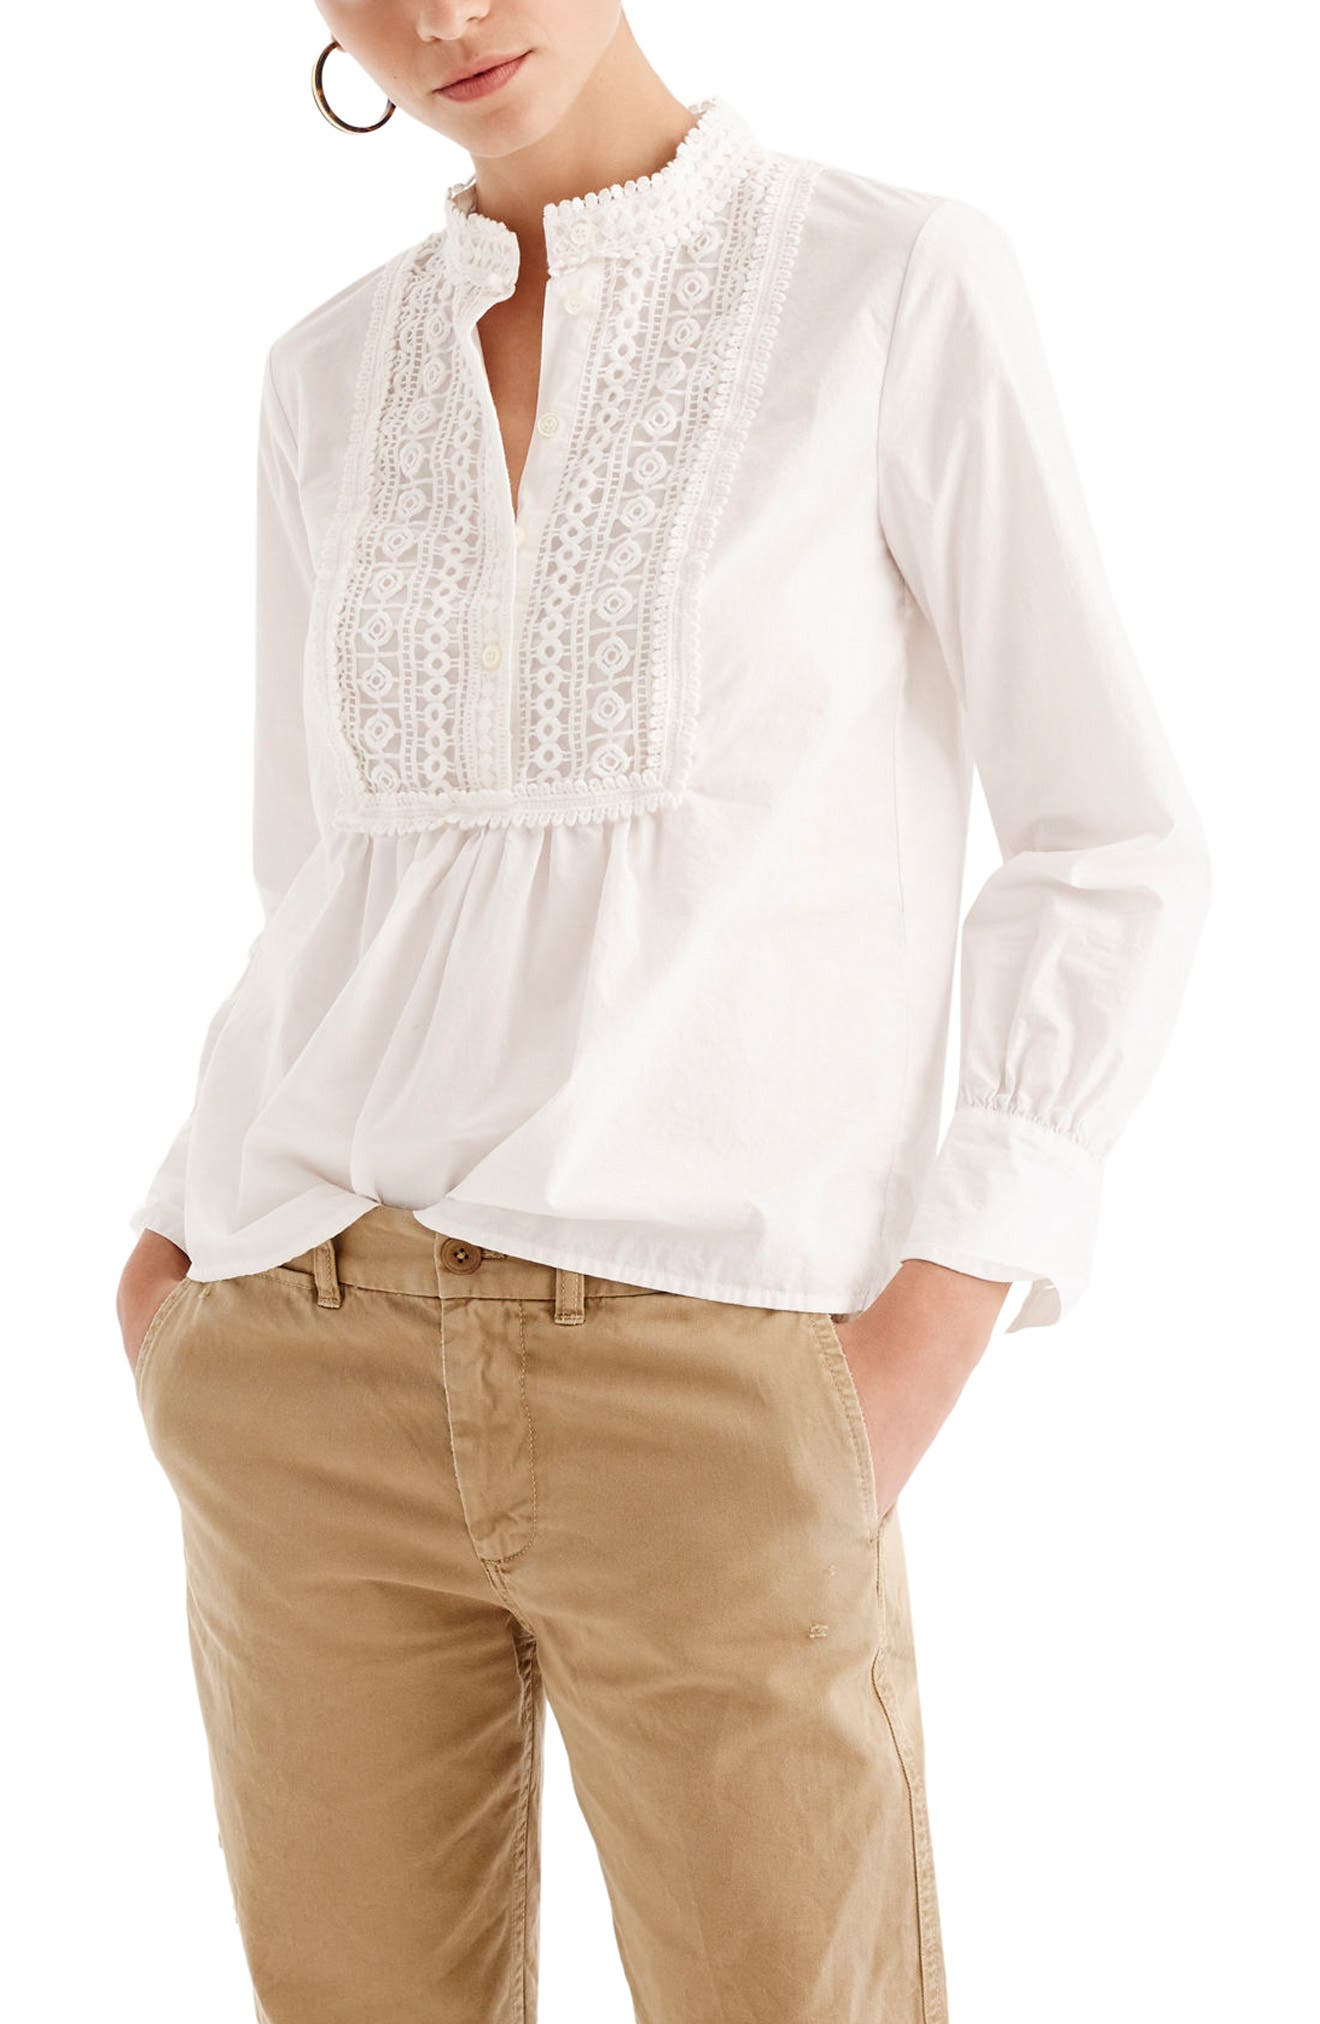 J.Crew Lace Bib Popover Shirt,                         Main,                         color, White